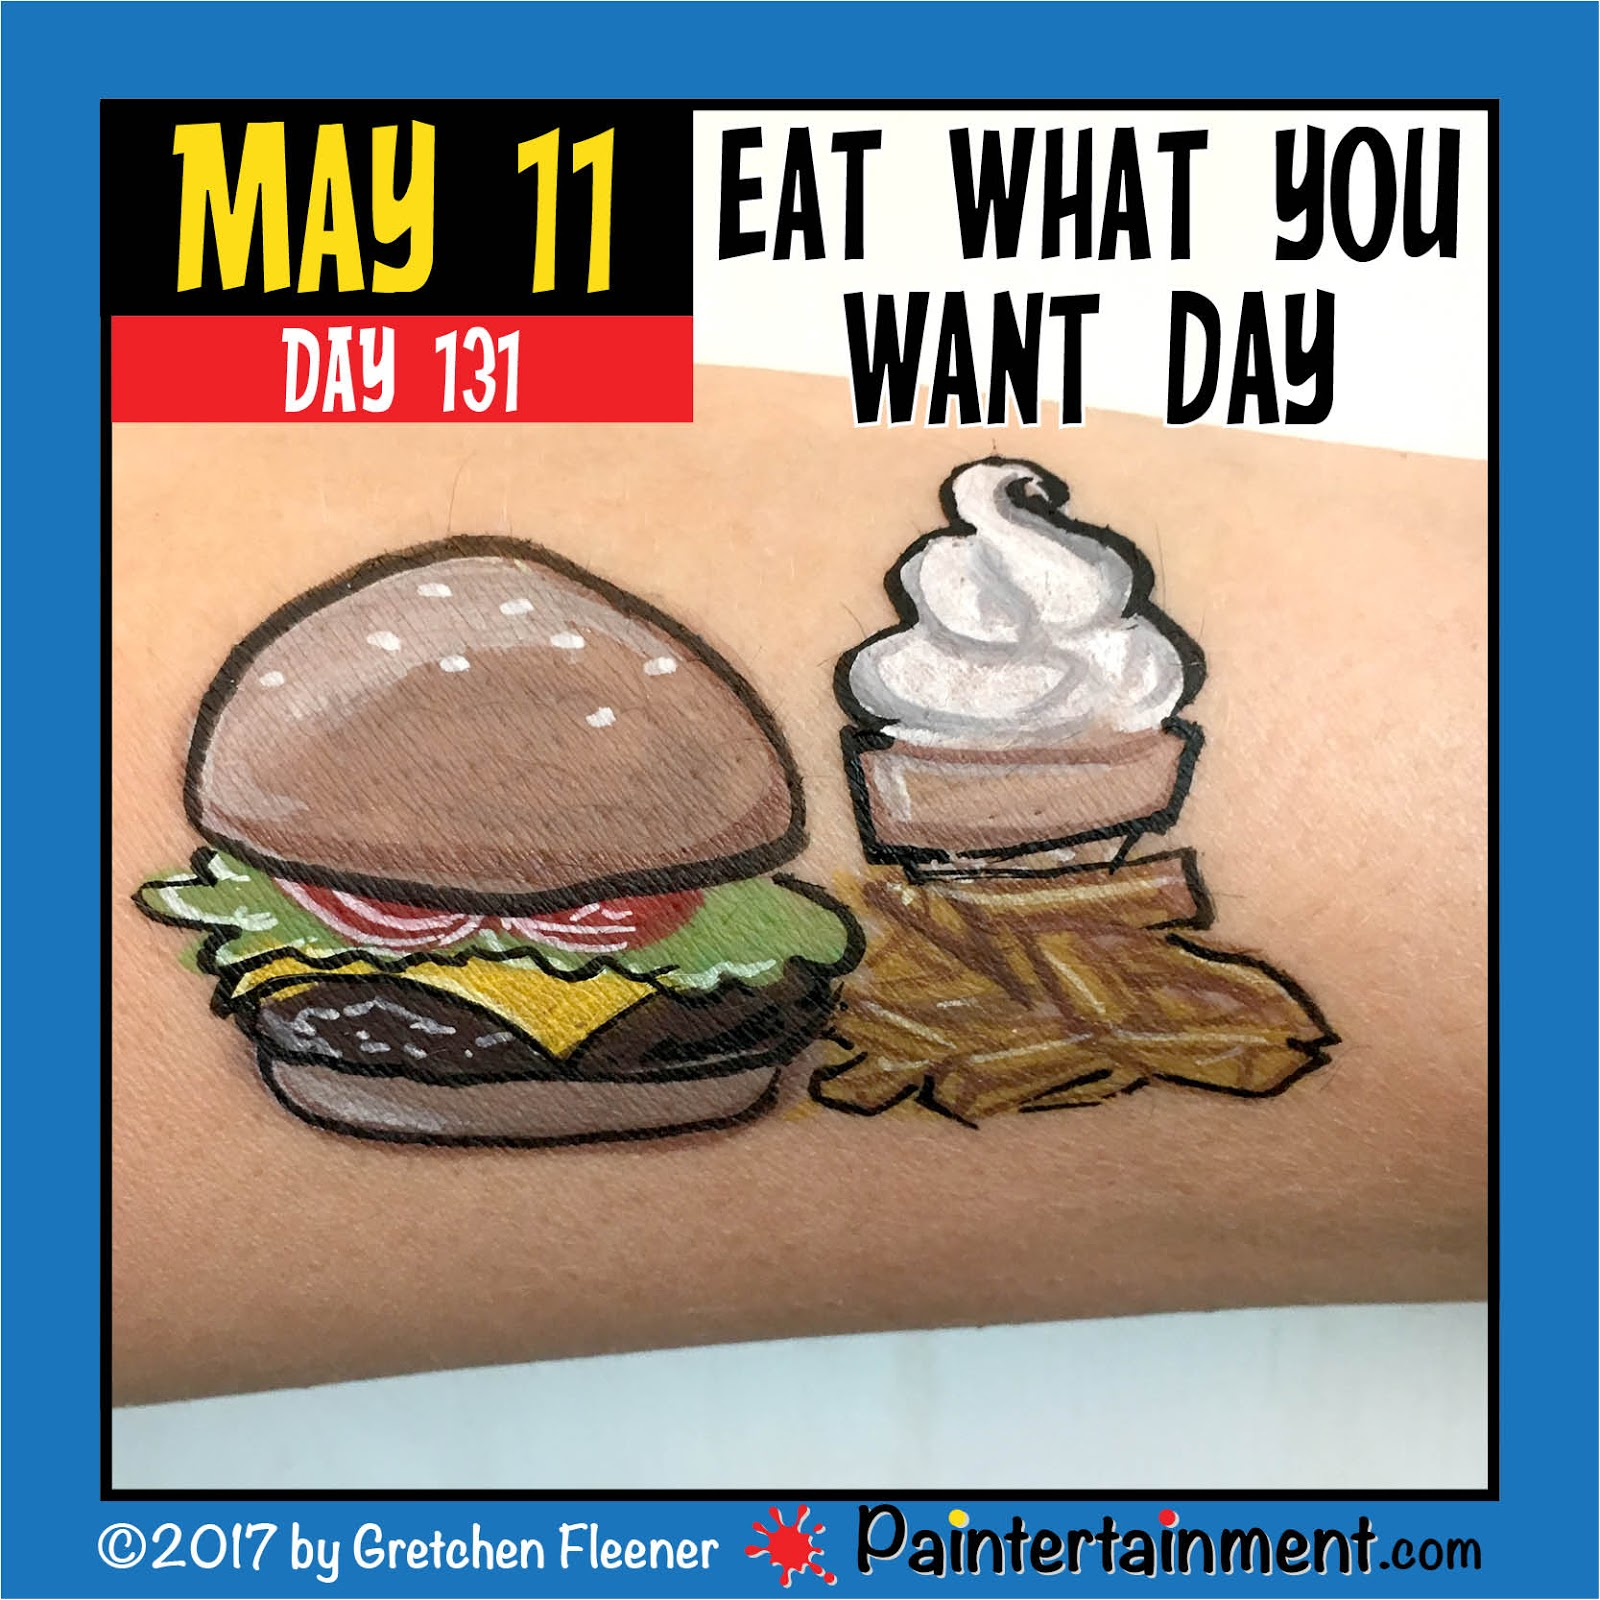 "Eat What You Want Day: Paintertainment: Celebrate Day 131: ""Eat What You Want Day!"""